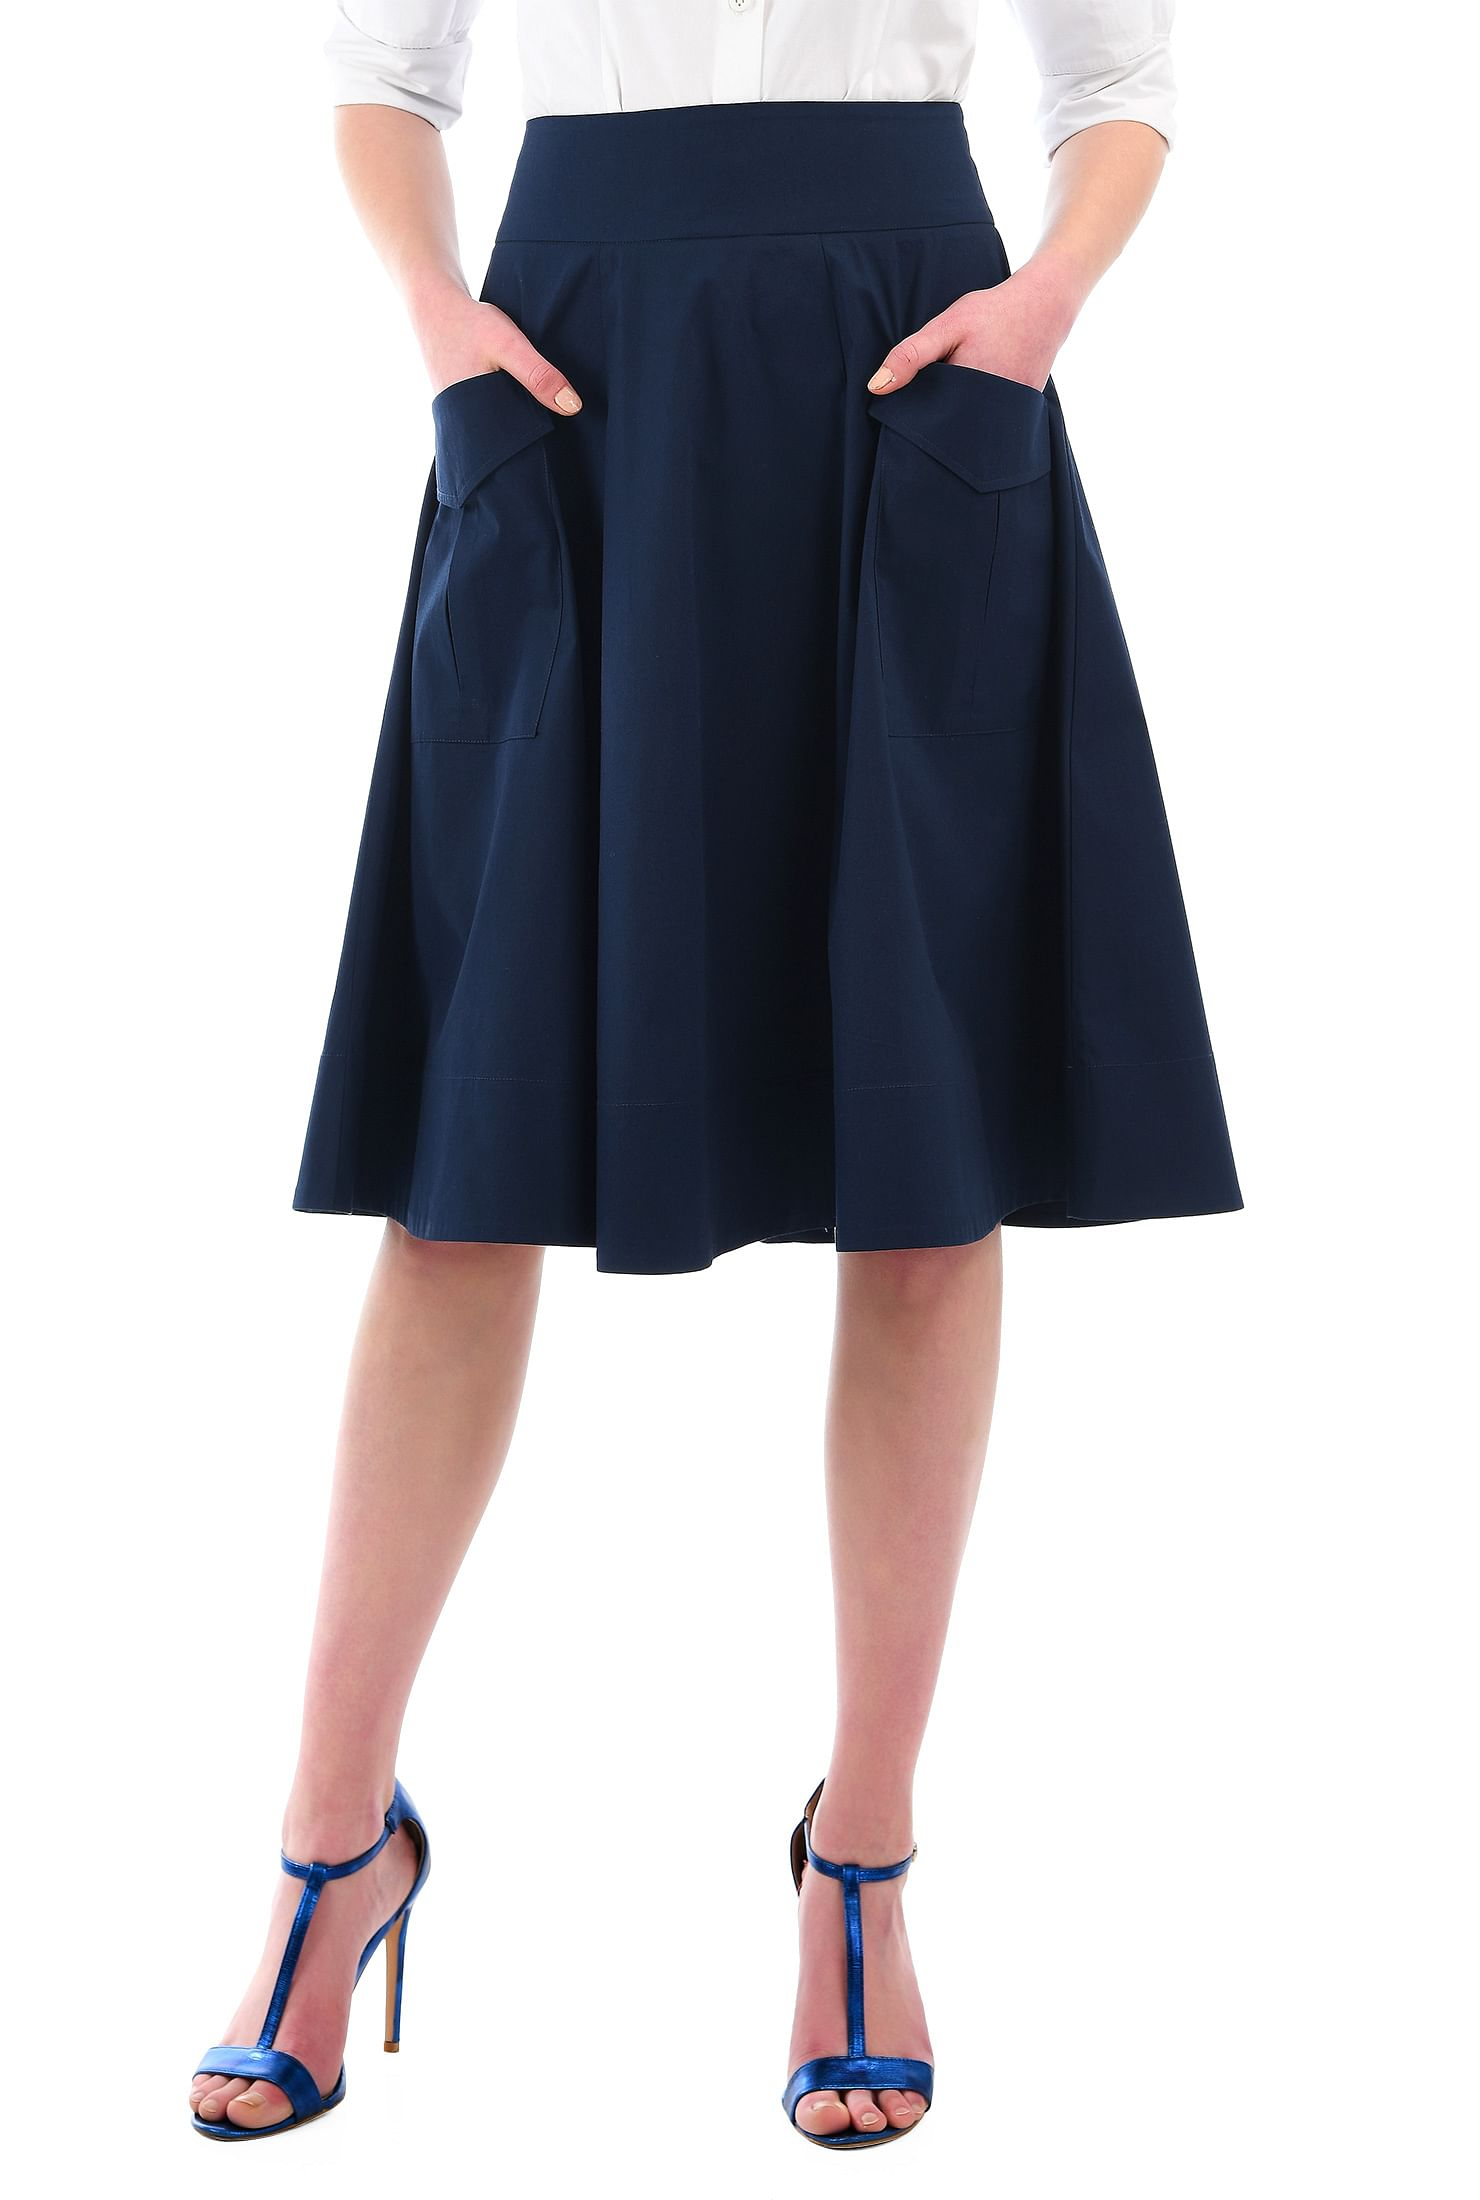 4b3502cfea banded waist skirts, below knee length skirts, Cotton/spandex skirts, Deep